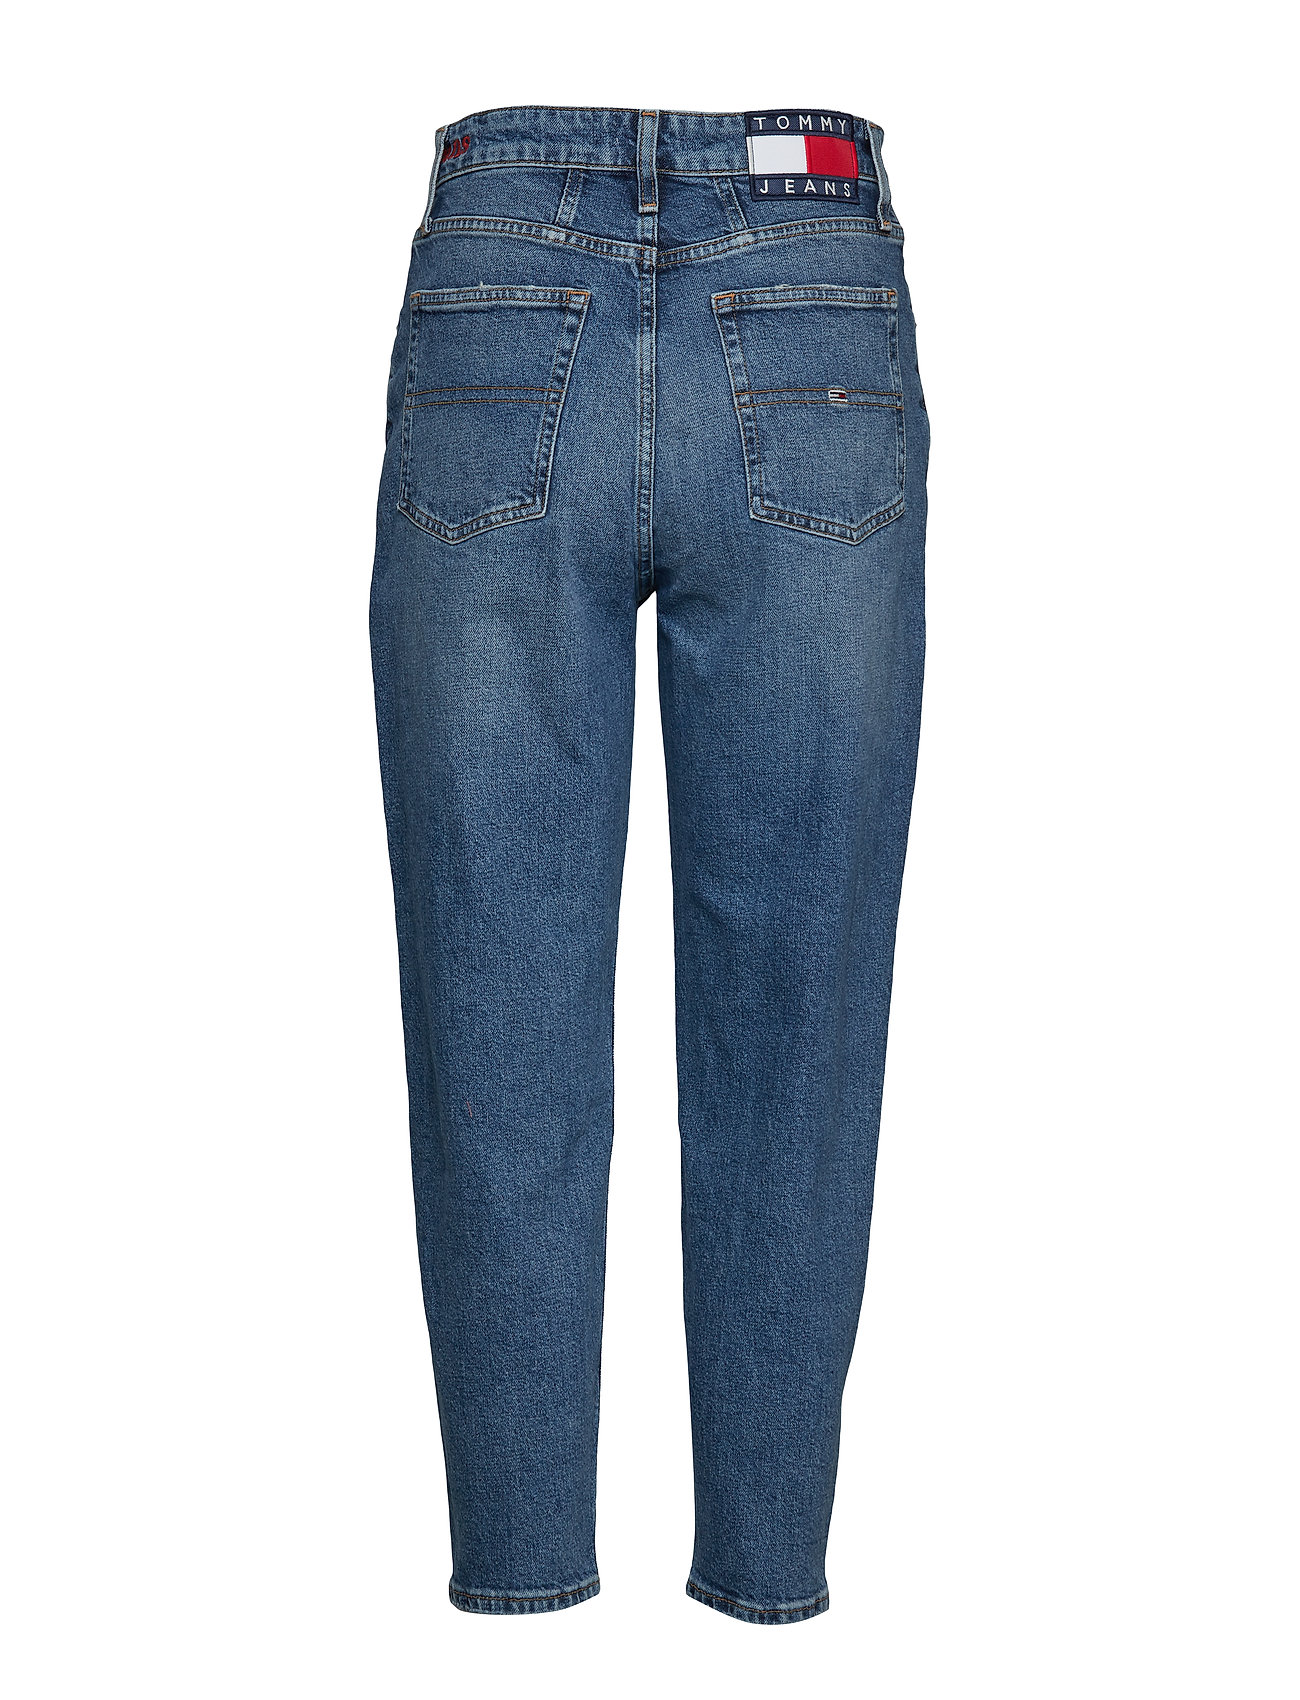 Tjaud Mid Rise Bl ComTommy High Tapered Jeans zUVpqMGS